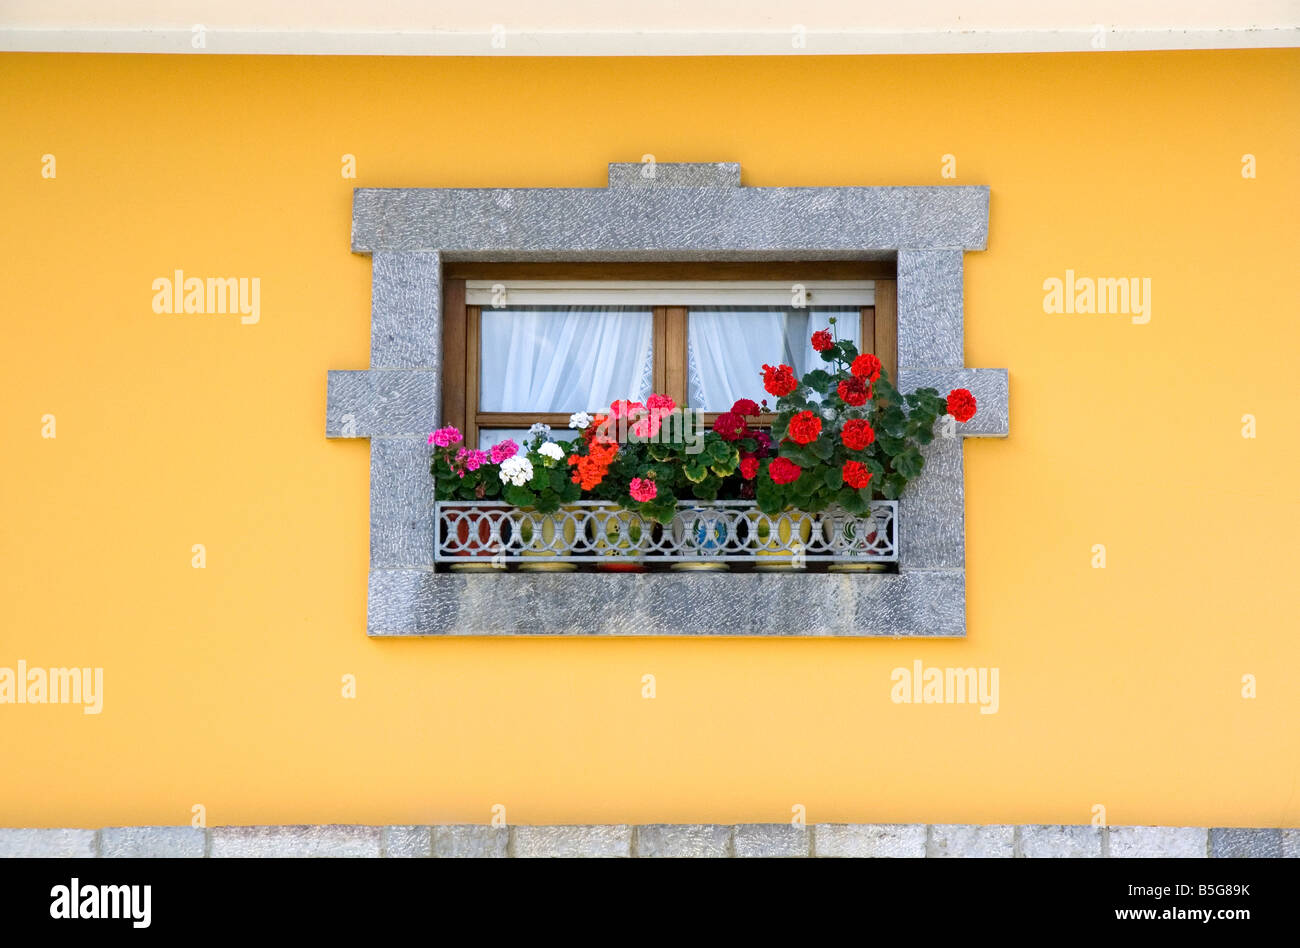 Window box with flowers on a residential home near Potes Liebana Cantabria northwestern Spain - Stock Image